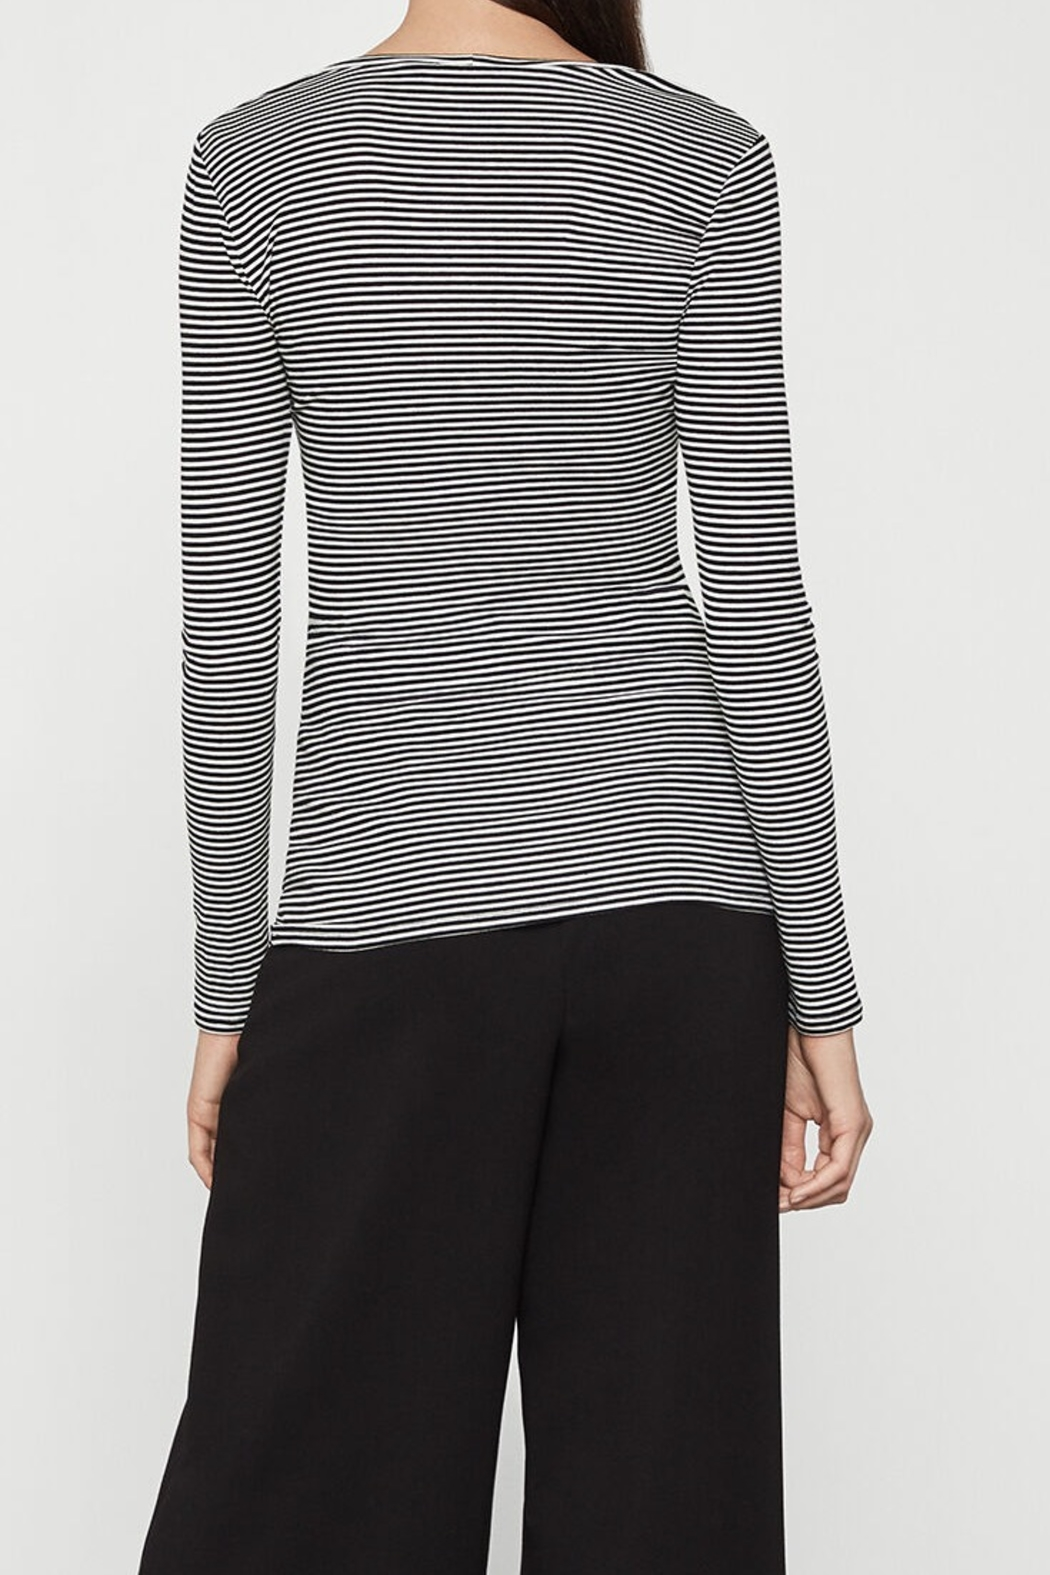 BCBG MAXAZRIA Striped Jersey Top - Front Full Image